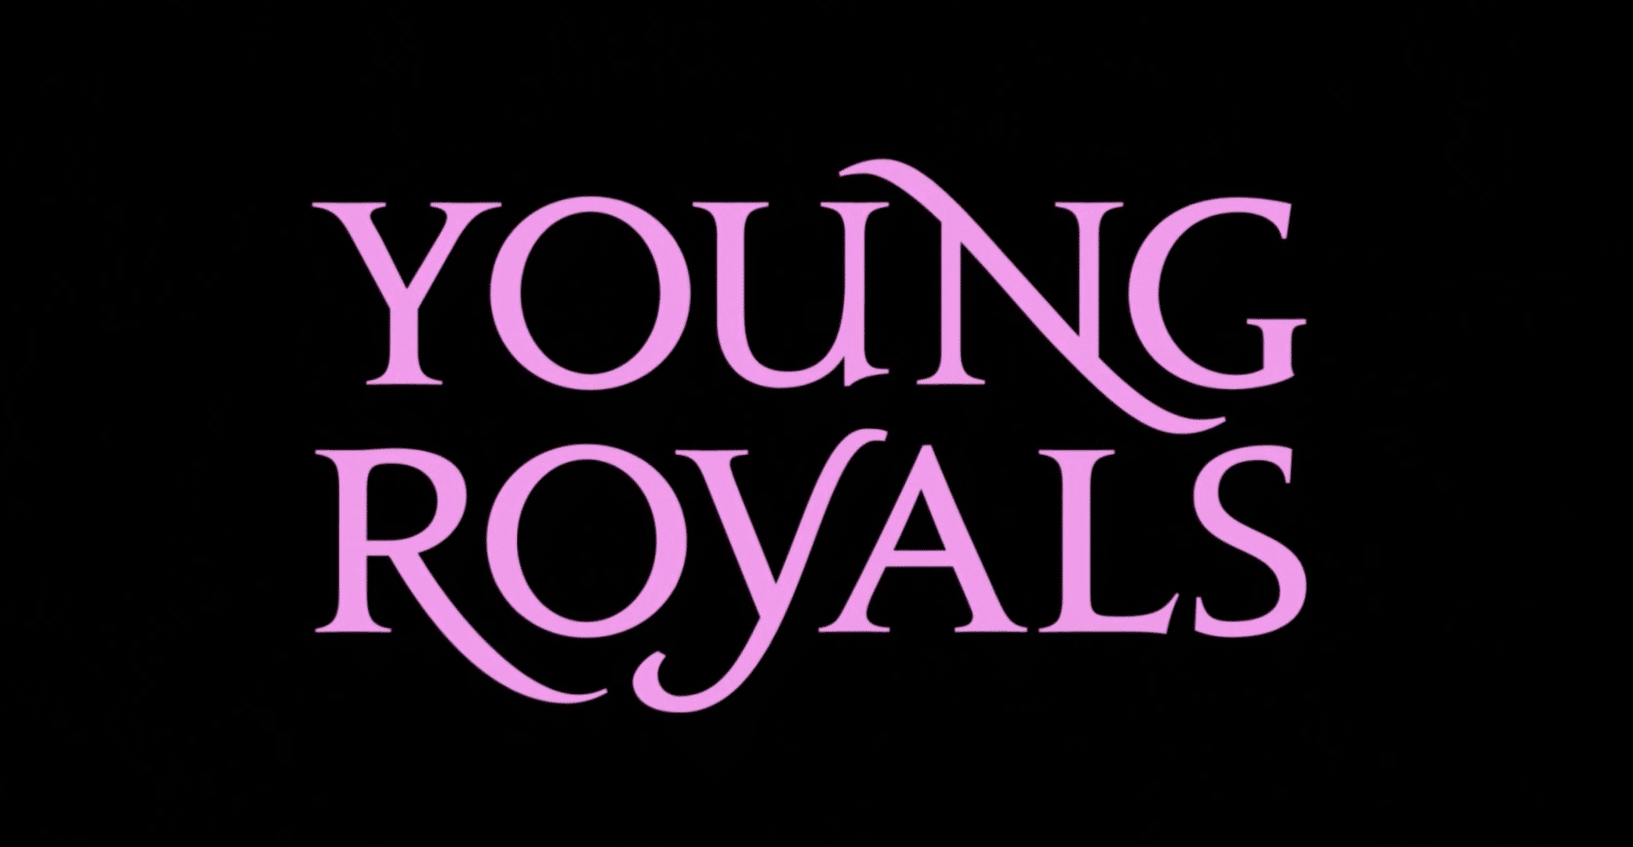 Young Royals : on regarde ou on passe ?